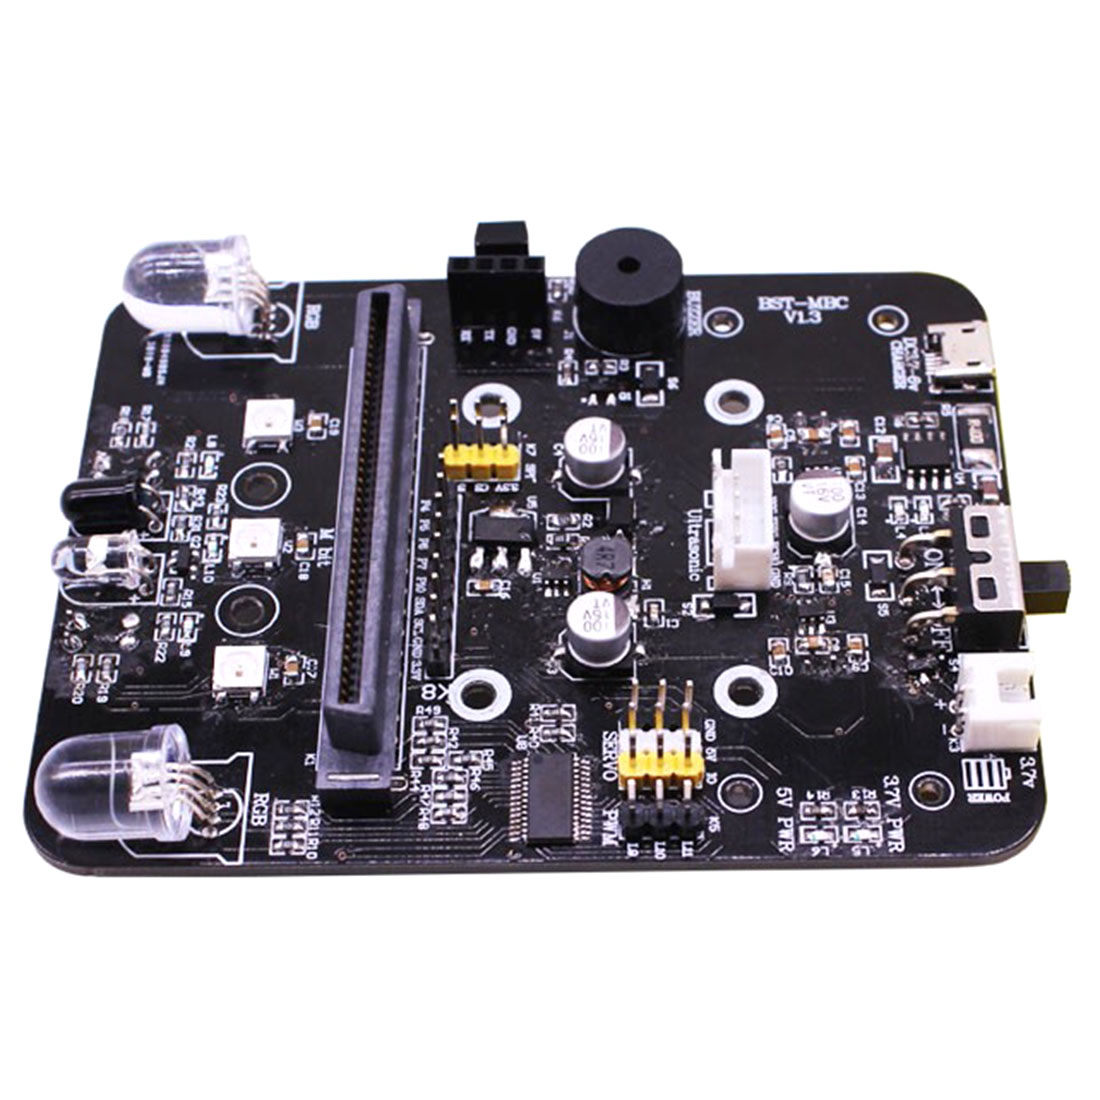 2019 Hot Sale Discovery Toys Multifunction Expansion Board Learning Kit For Stem Maker Education Toy Gift For Kid Children Adult